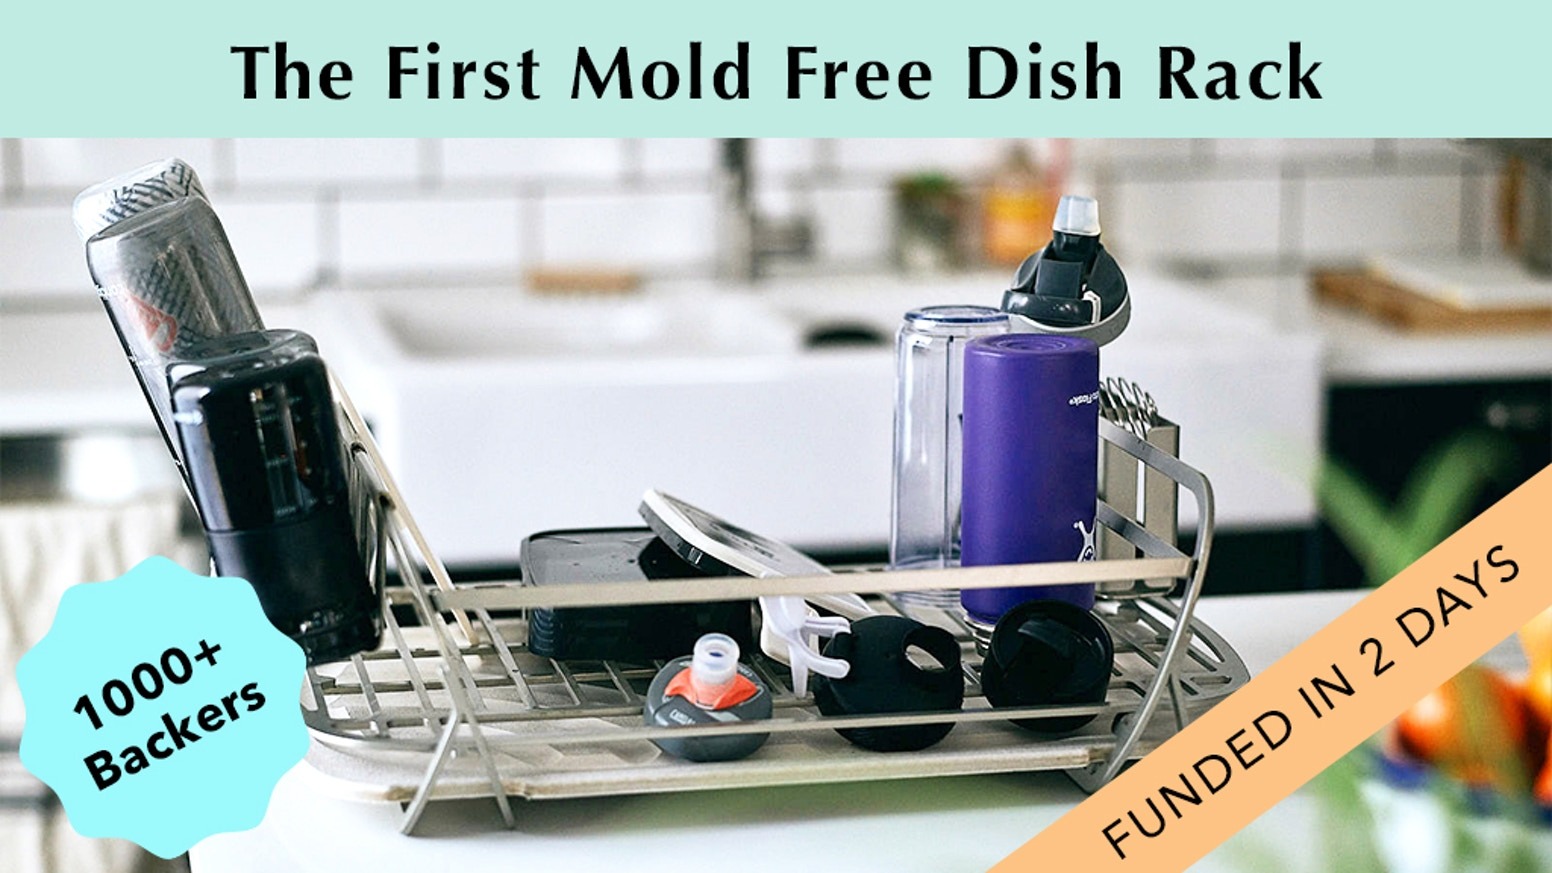 The world's cleanest, self-drying dish rack and dish pad combo that uses Diatomaceous Earth to prevent mold with chic, modern style.